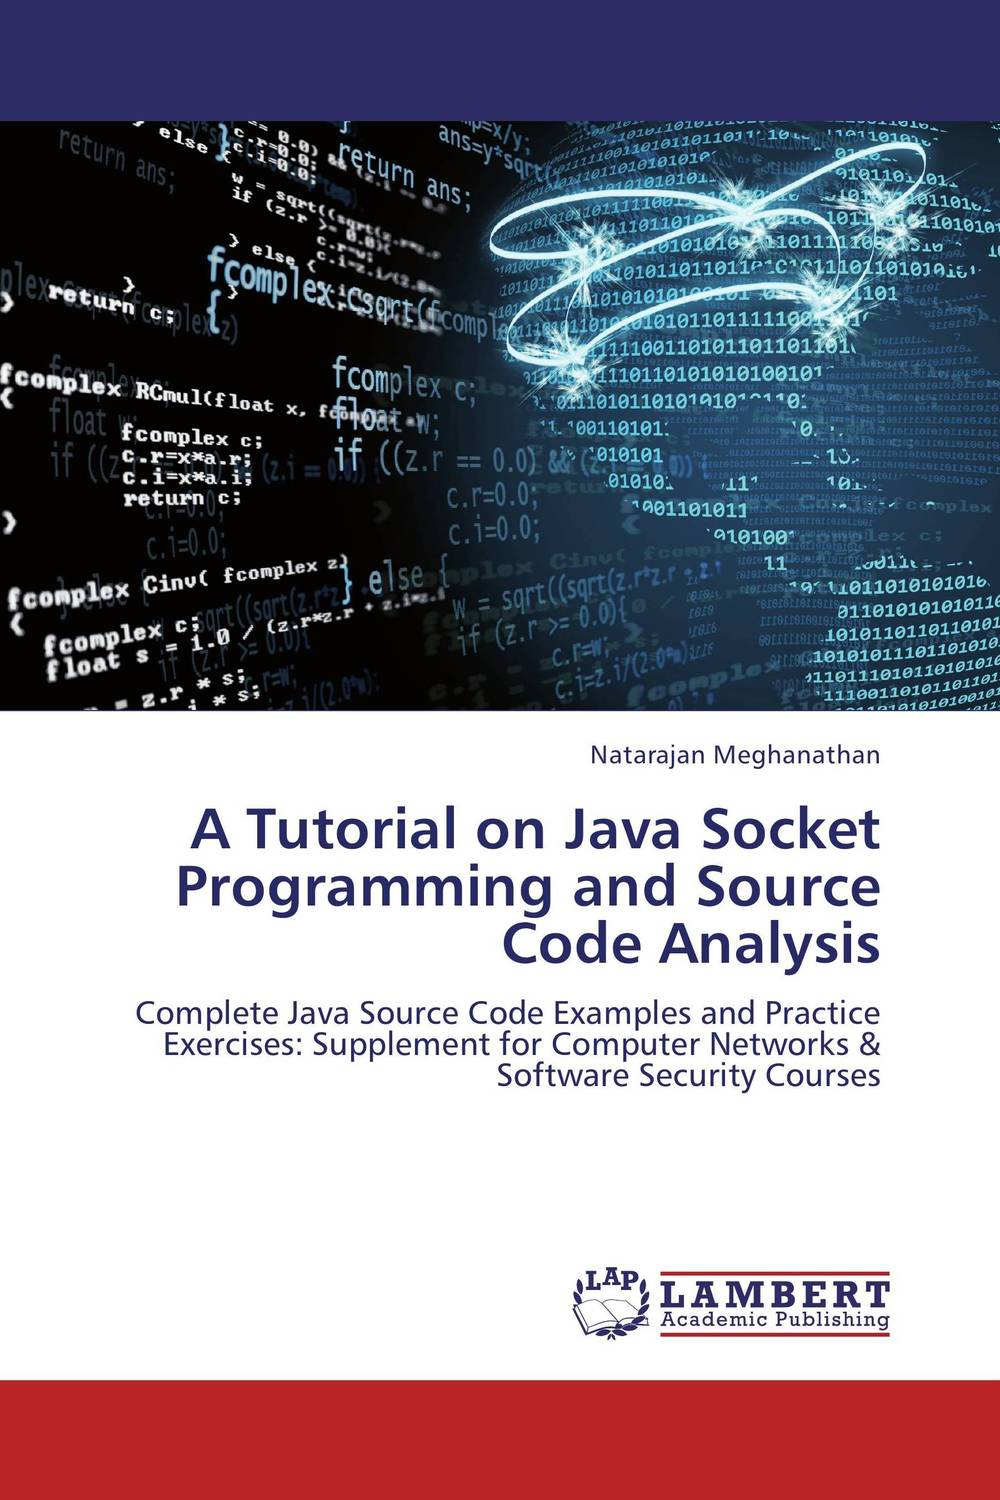 A Tutorial on Java Socket Programming and Source Code Analysis a tutorial on java socket programming and source code analysis